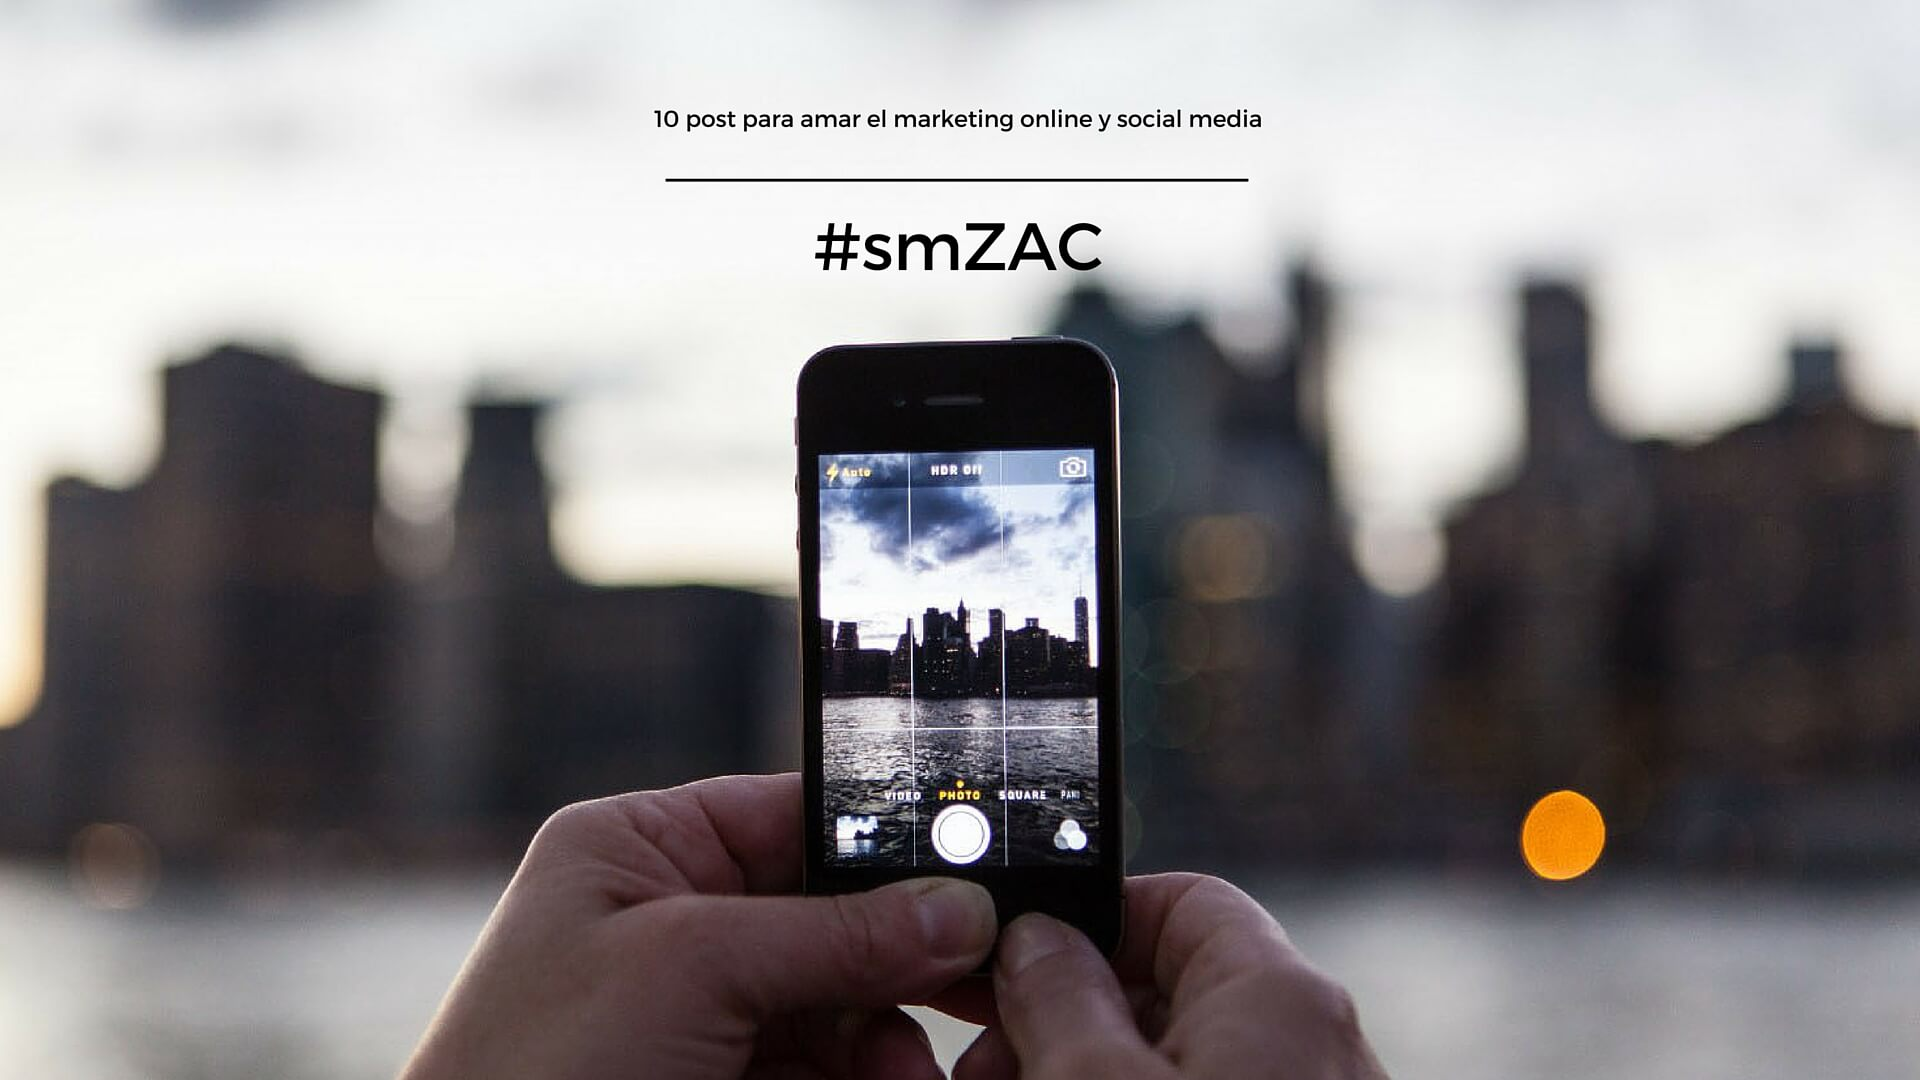 smZAC: 10 post para amar el marketing online y social media